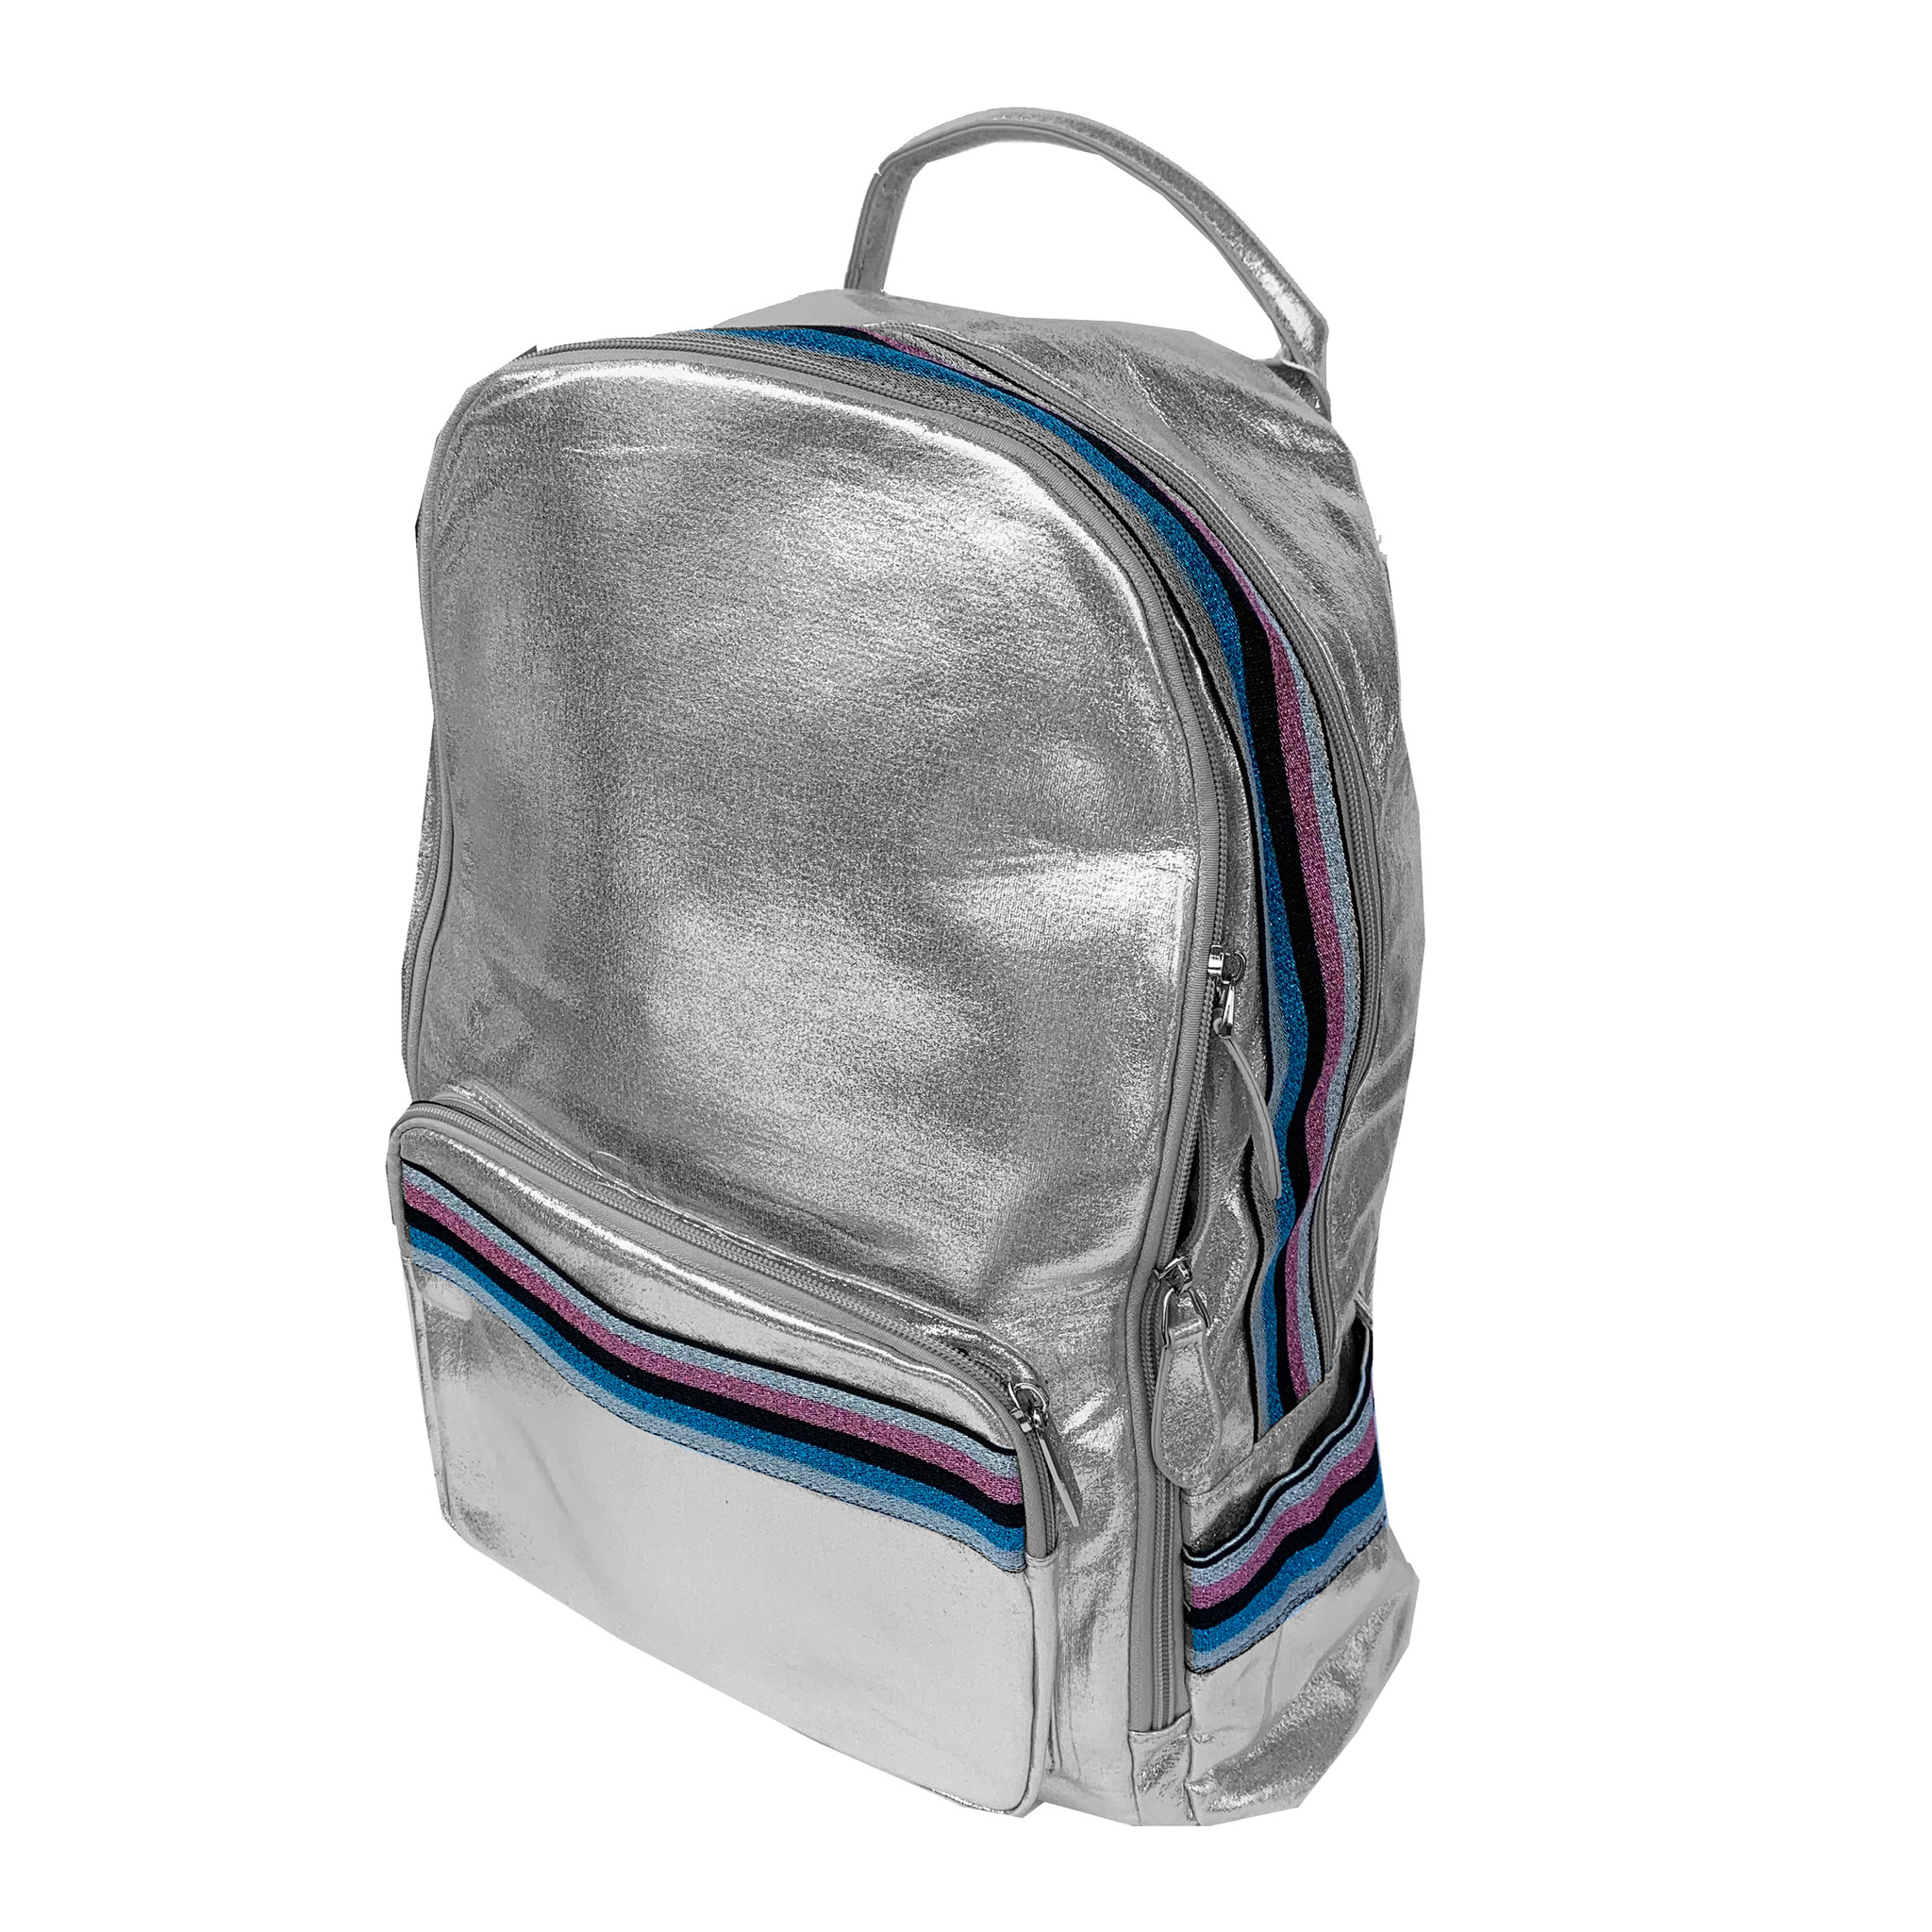 Bari Lynn Silver Backpack with Taping